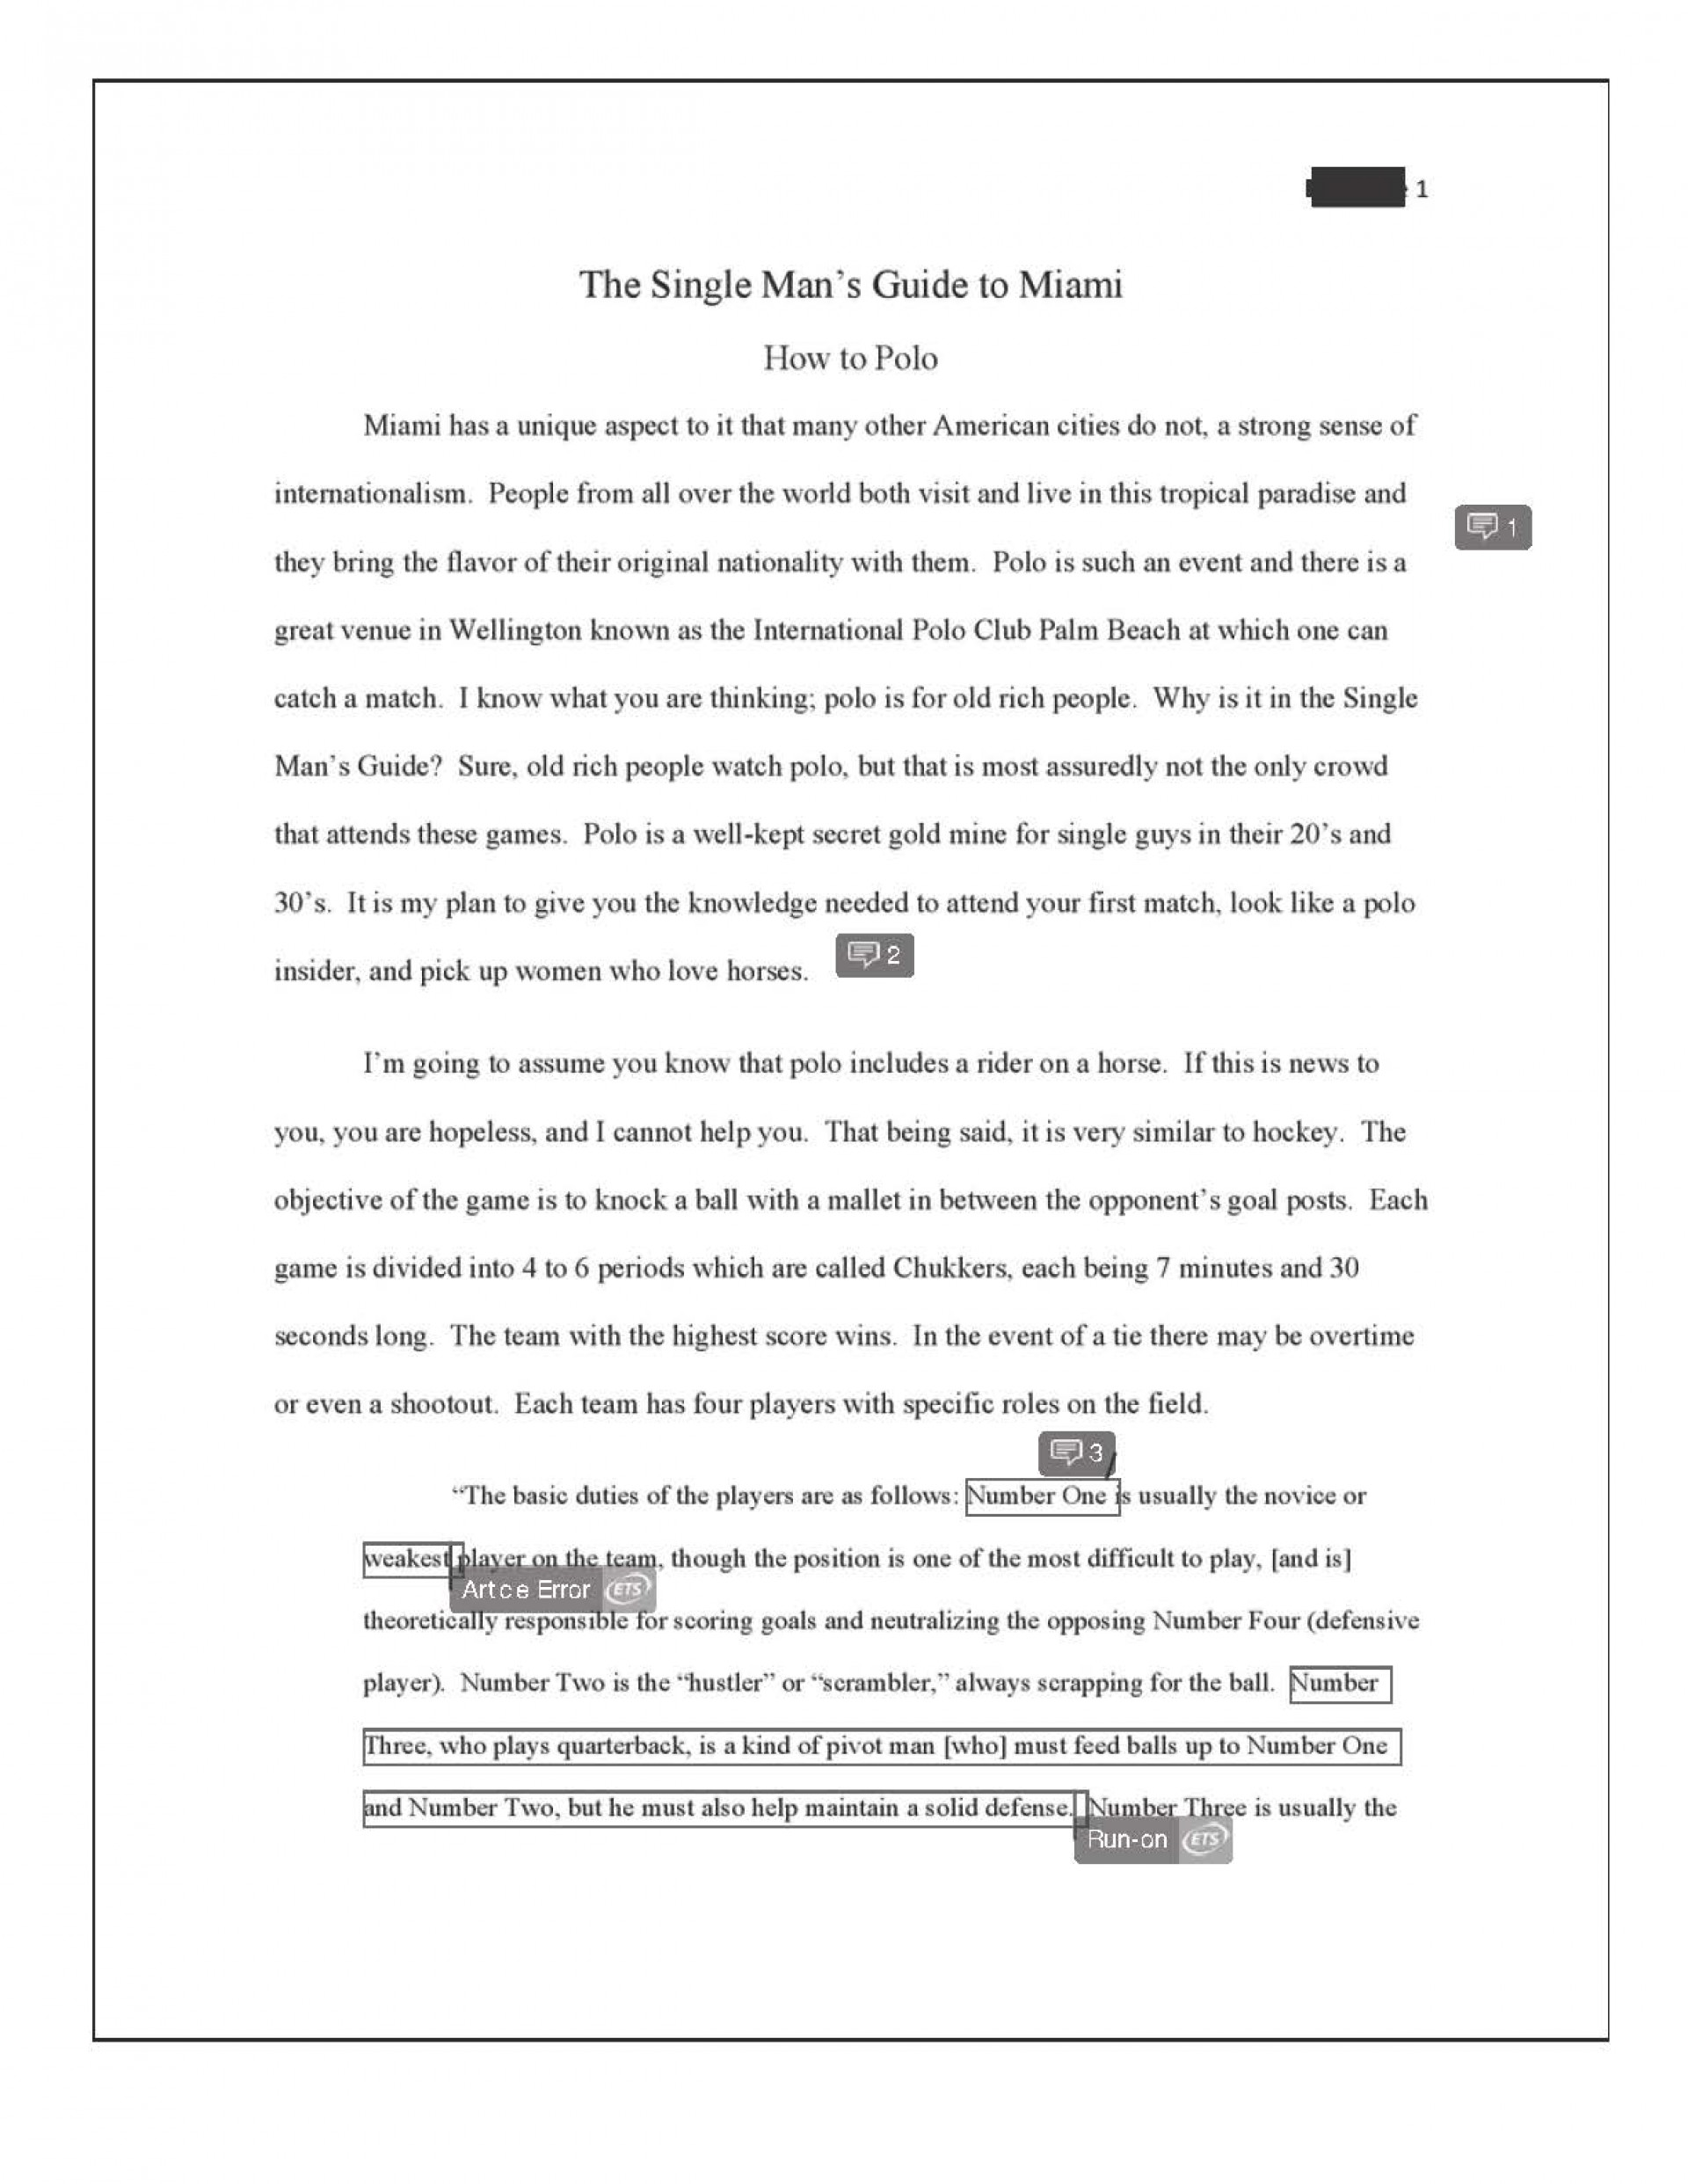 005 Informative Essay Topics Essays Sample Funny Argumentative For Middle School Final How To Polo Redacted P College Students Hilarious Good Remarkable High 4th Grade Expository 1920